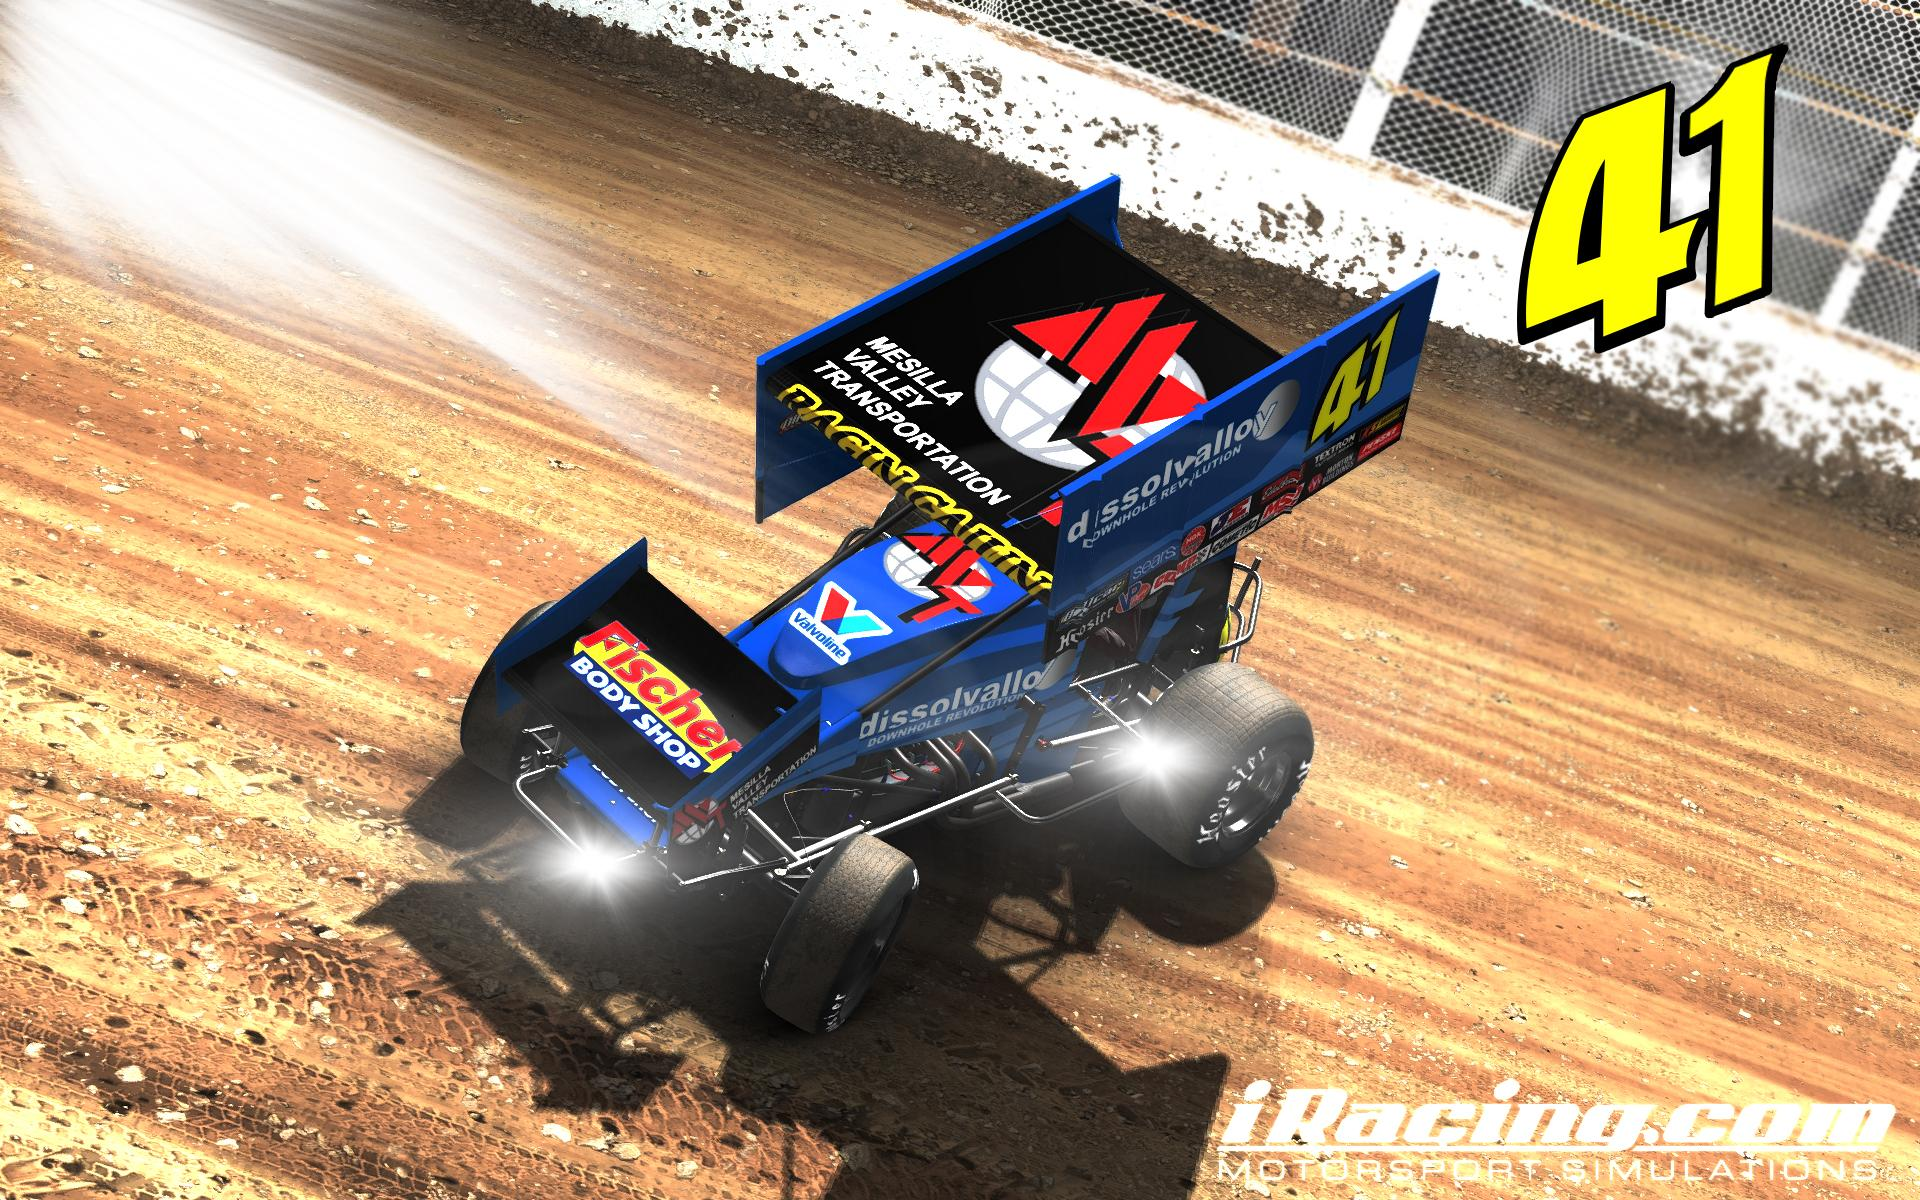 Preview of Dissolvalloy Dirt Sprint by Doyle Lowrance